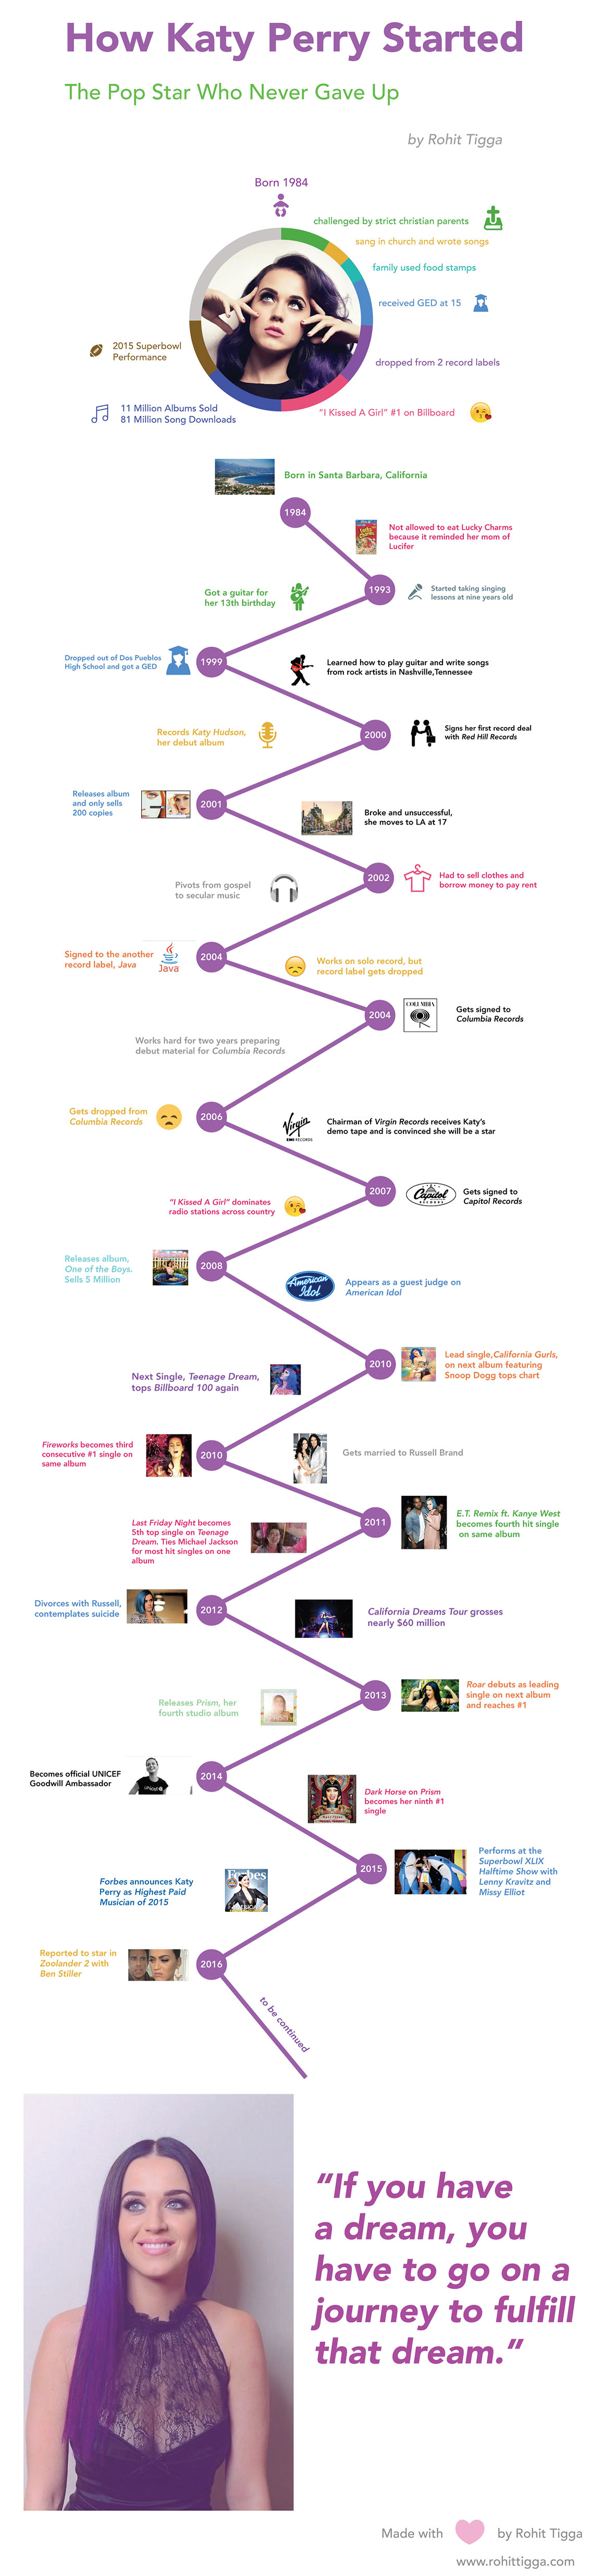 How Katy Perry Became Famous Infographic